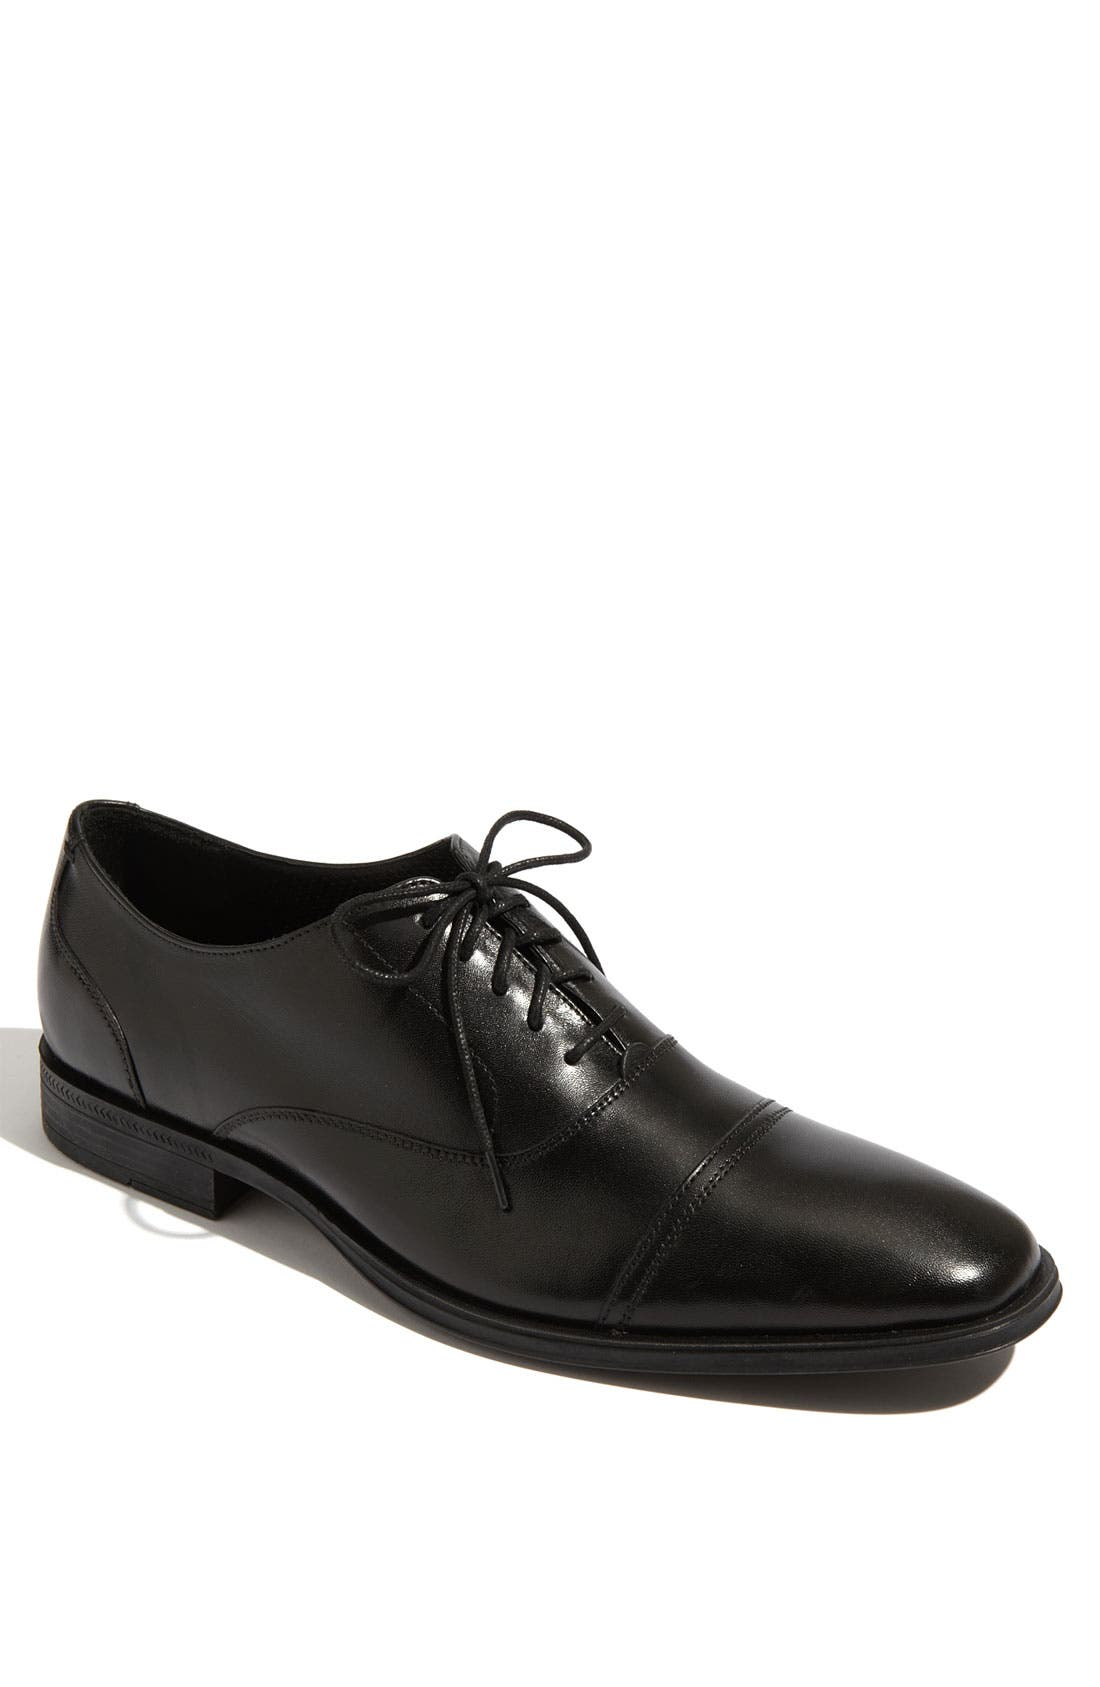 Main Image - Cole Haan 'Air Adams' Cap Toe Oxford